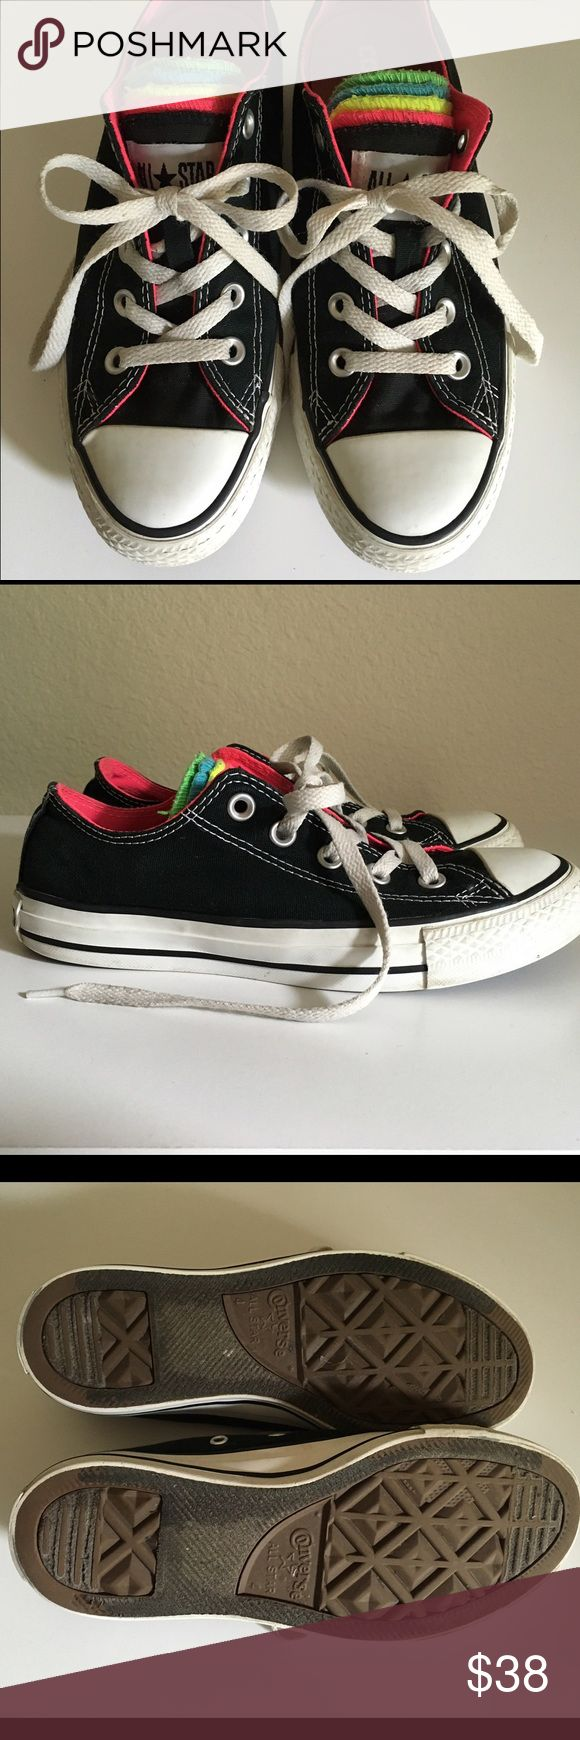 Black Neon Converse Black Neon Converse come in a black shell with neon tongue in pink, yellow, green and blue. Size: 6 Women's 4 Mens. In excellent used condition. Converse Shoes Athletic Shoes